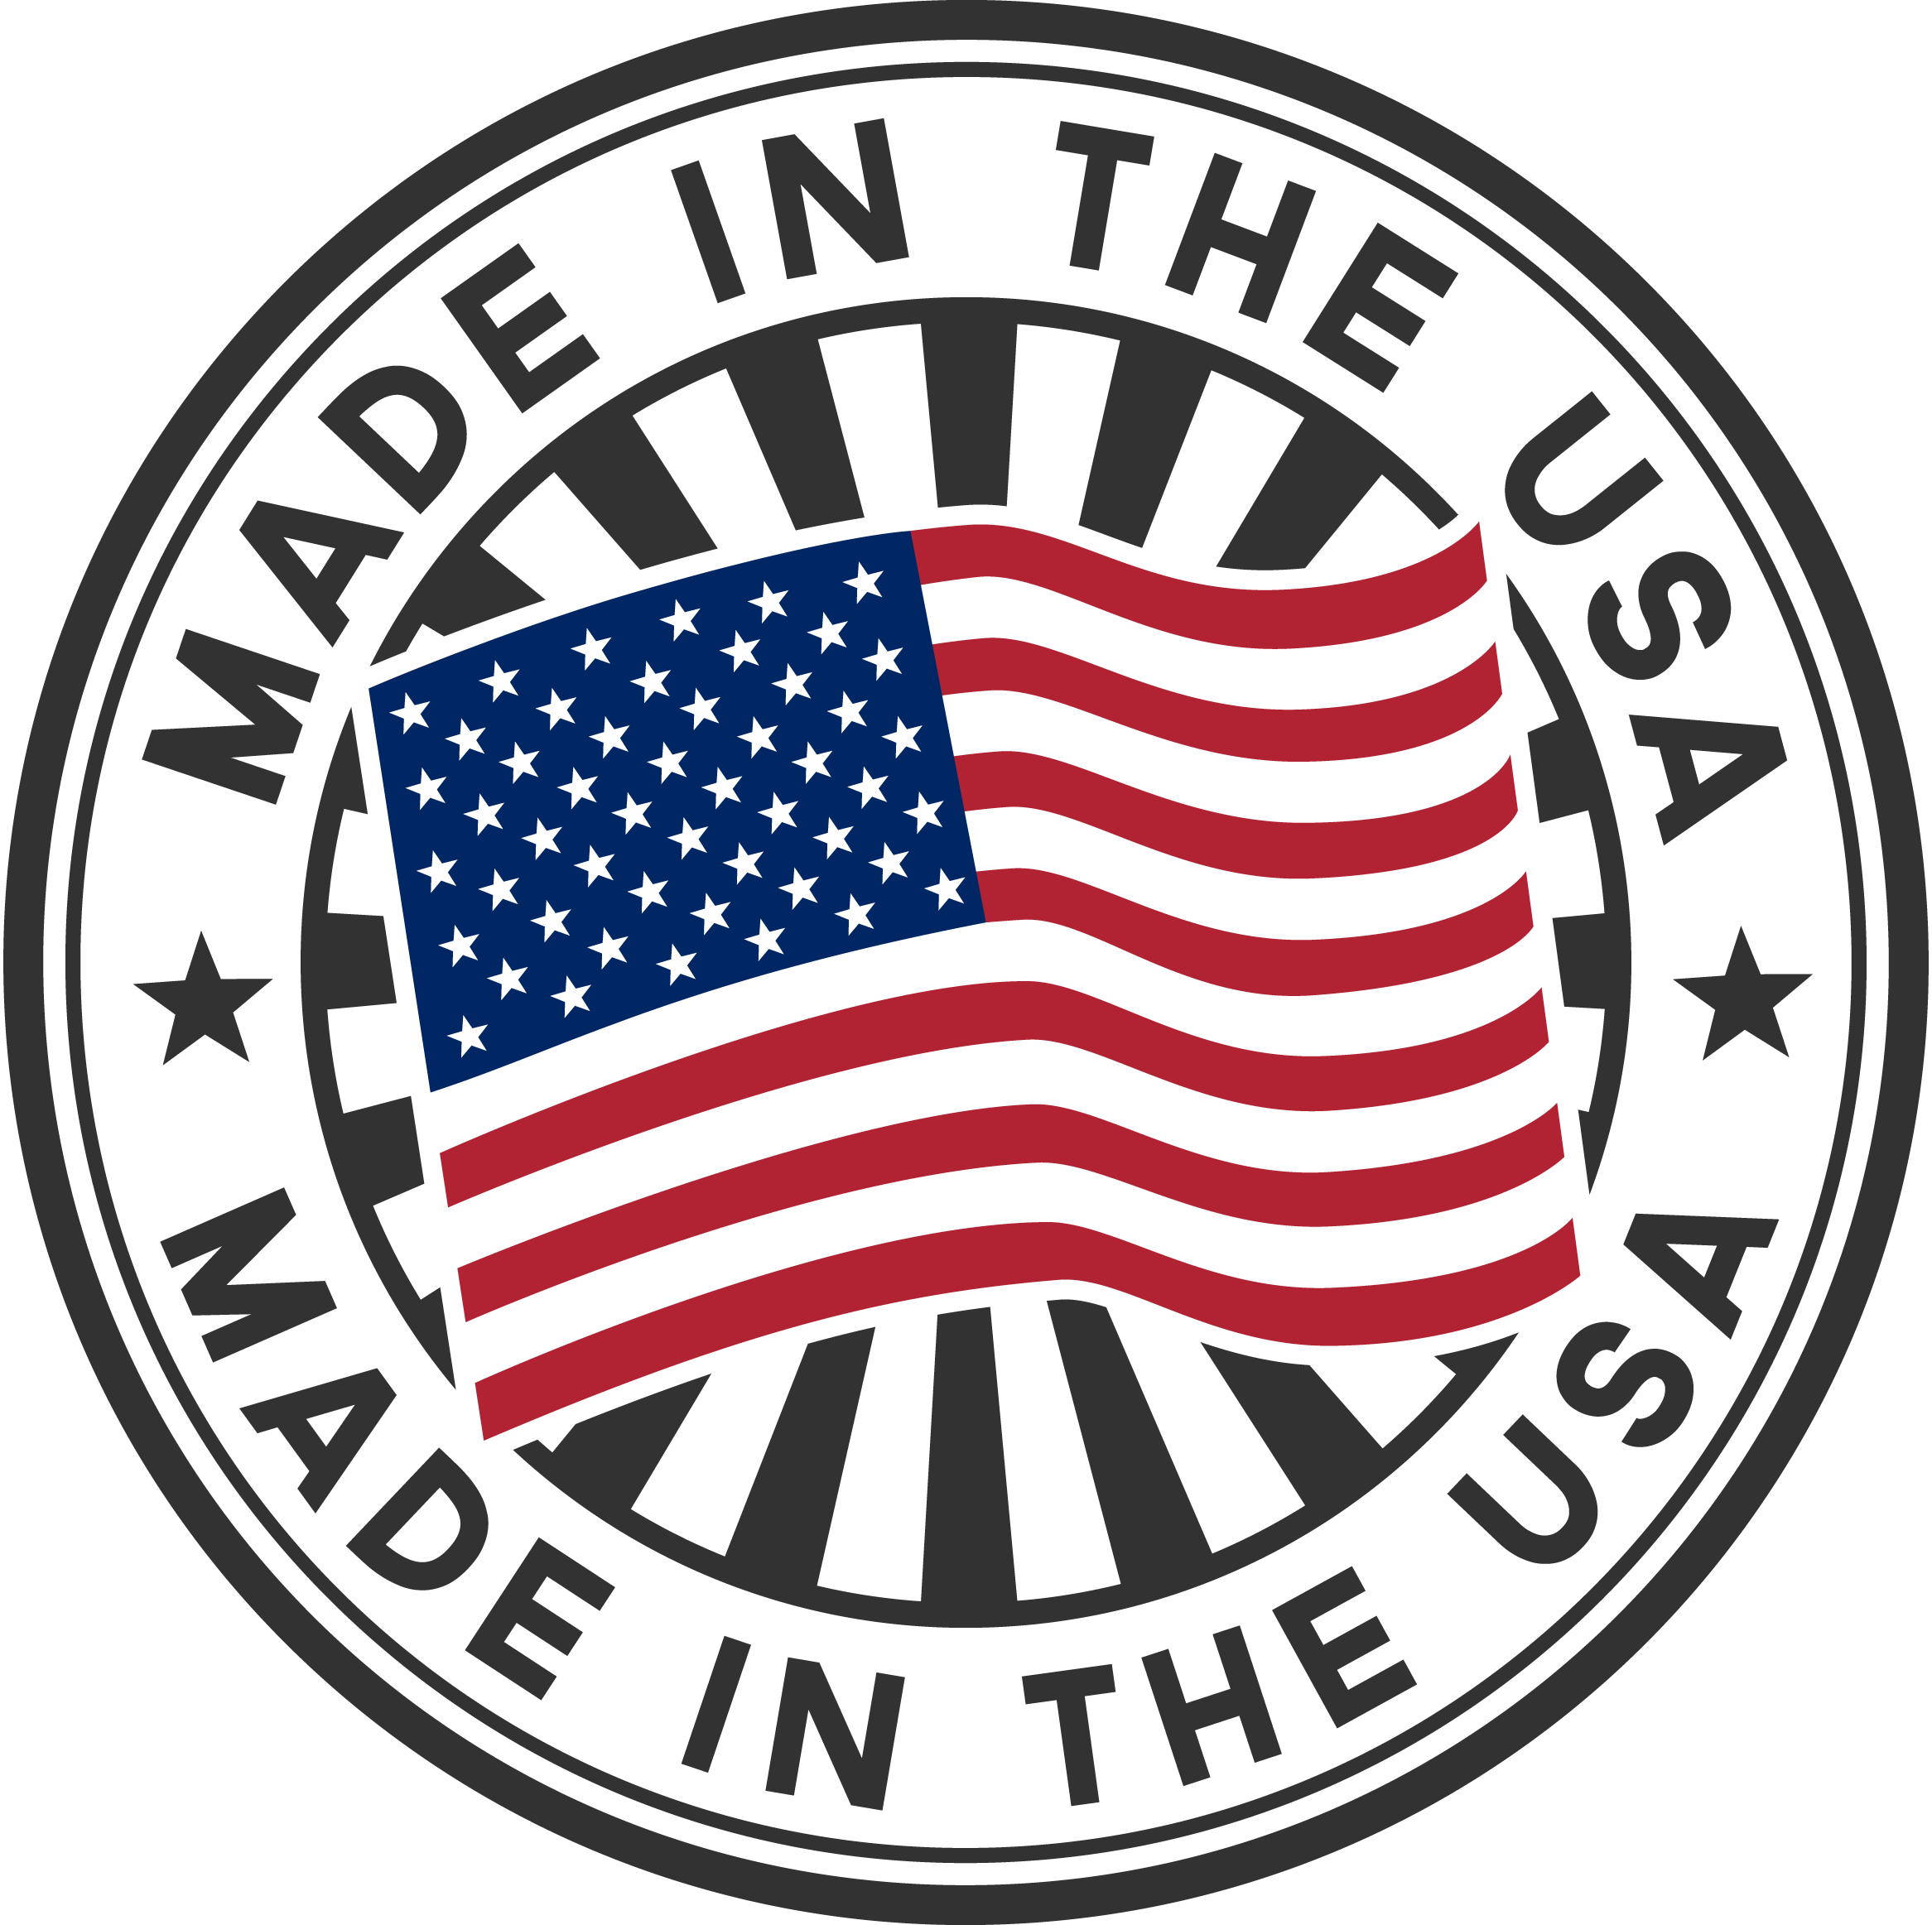 Made In U.S.A PNG HD.